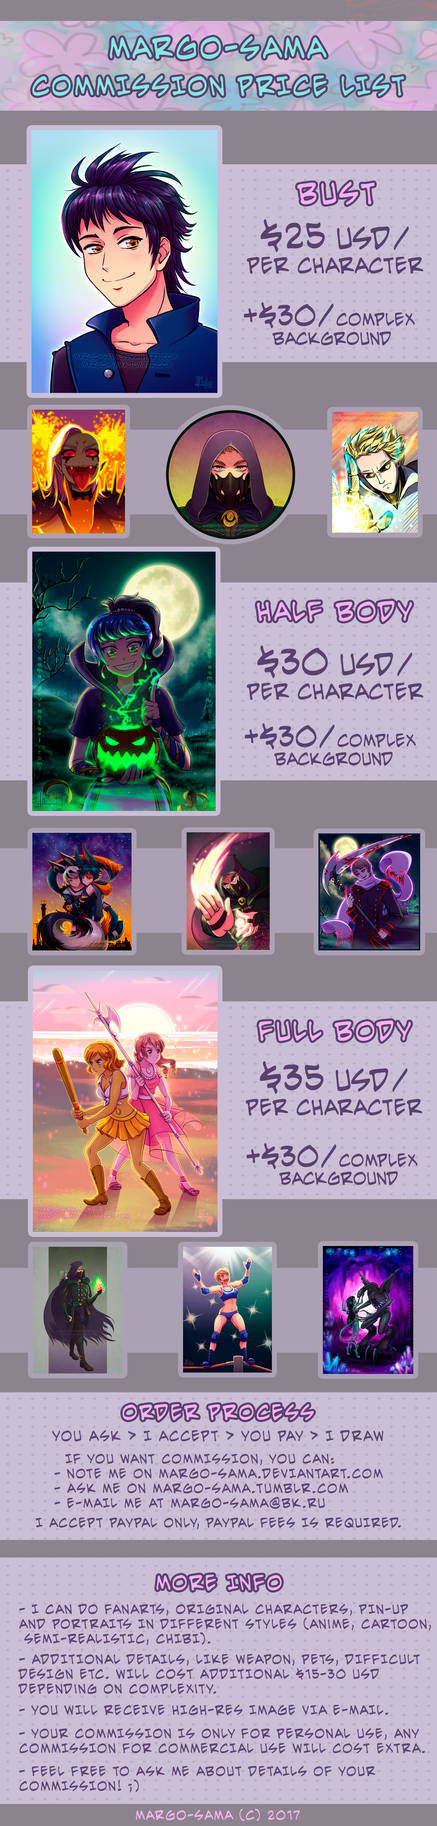 [OPEN] Commissions Info [Paypal]